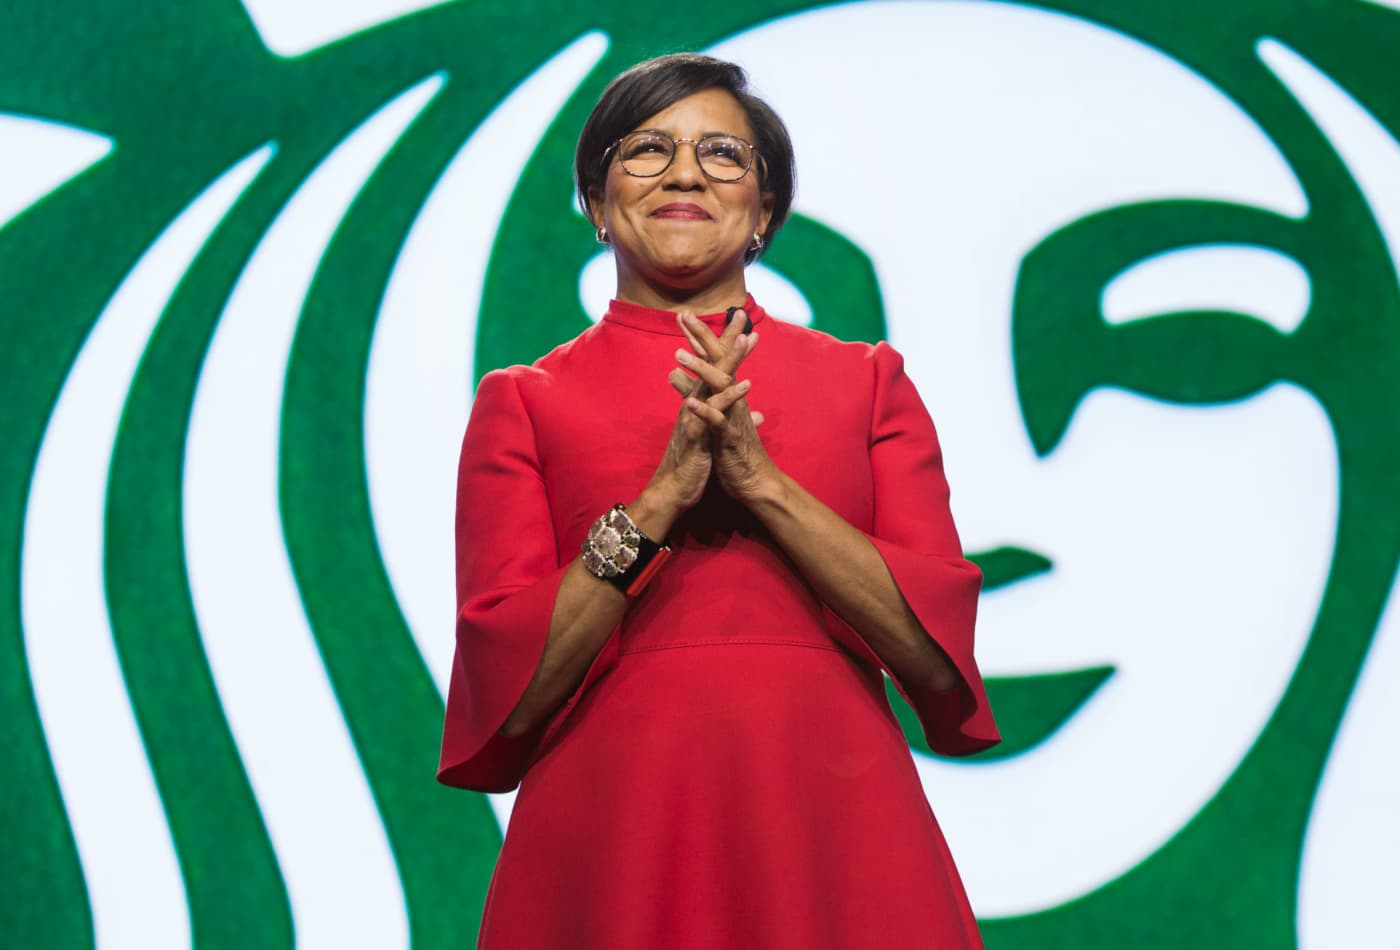 Starbucks COO Roz Brewer is leaving at the end of February to become CEO of Walgreens Boots Alliance